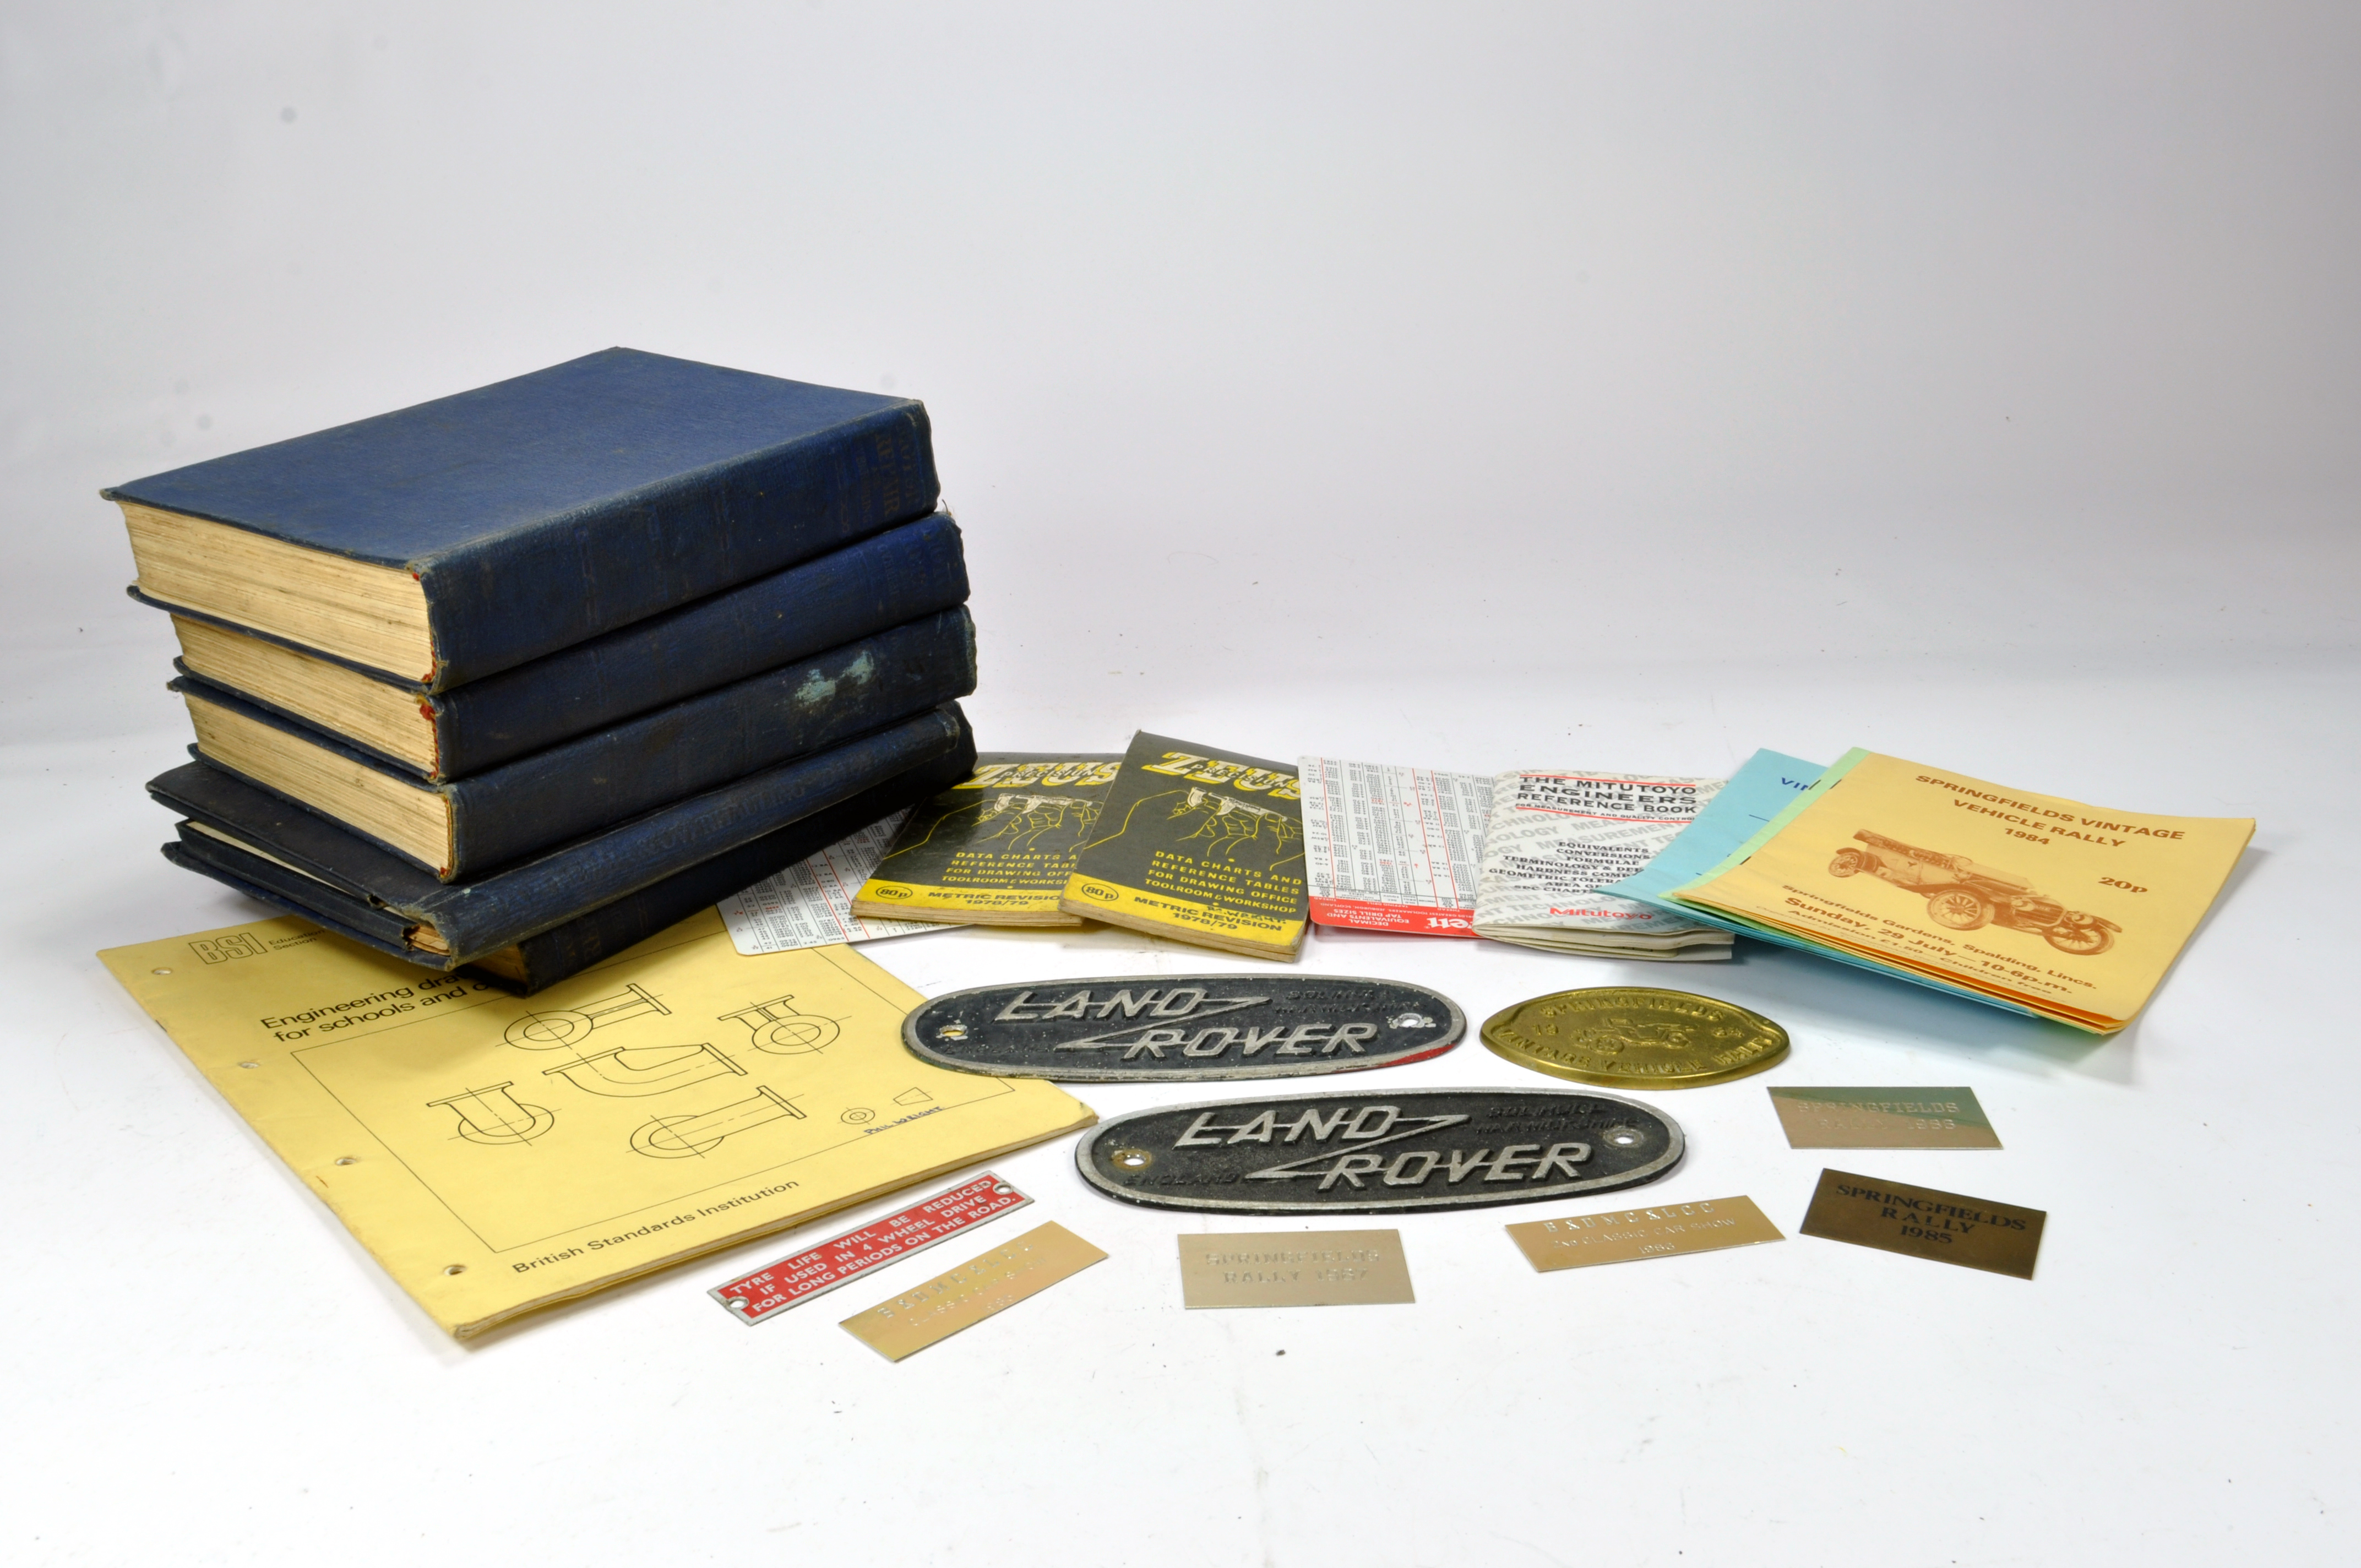 Lot 1143 - Original Early Land Rover Badges x 2 plus other items relating to technical measurement literature